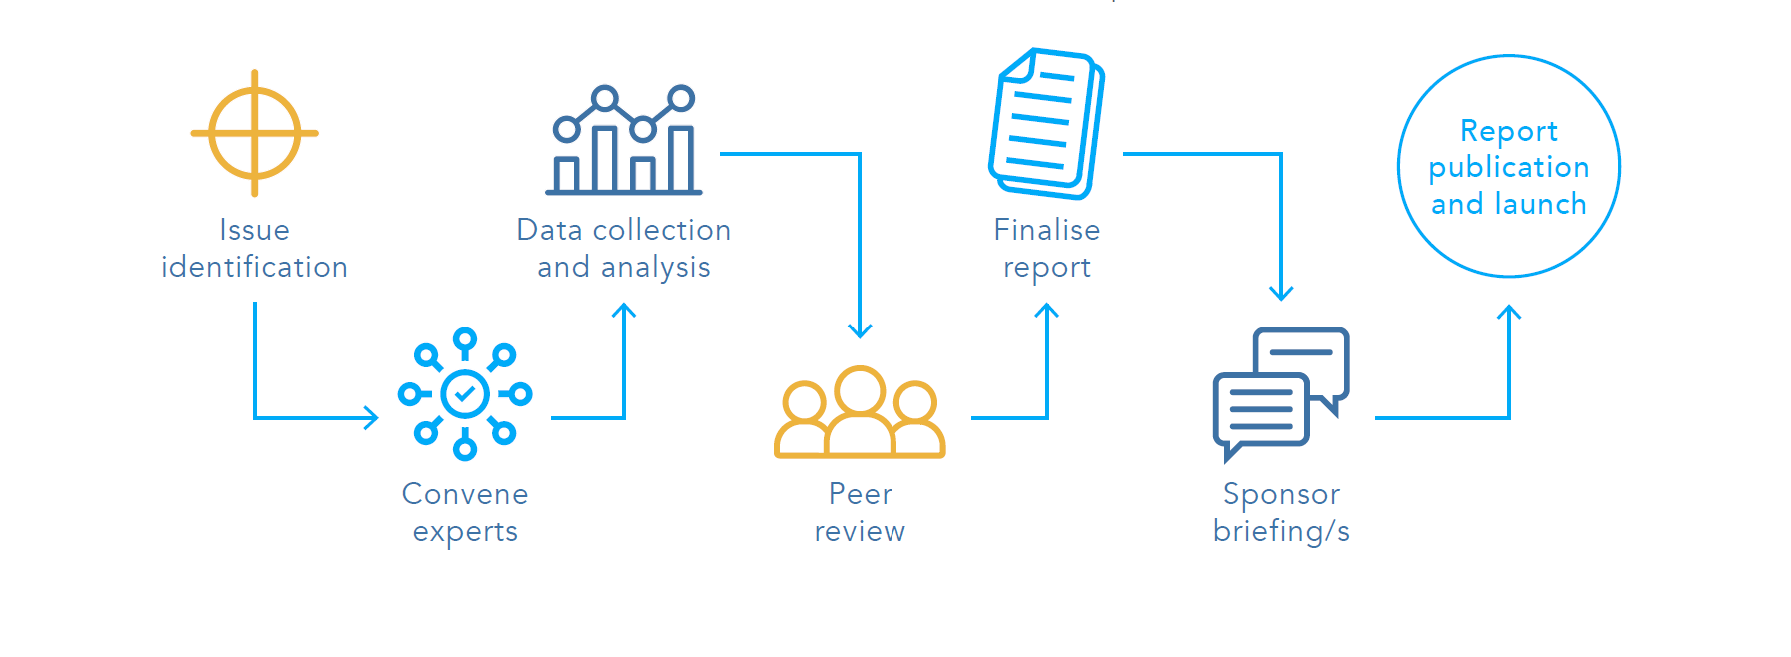 Our research and advice process